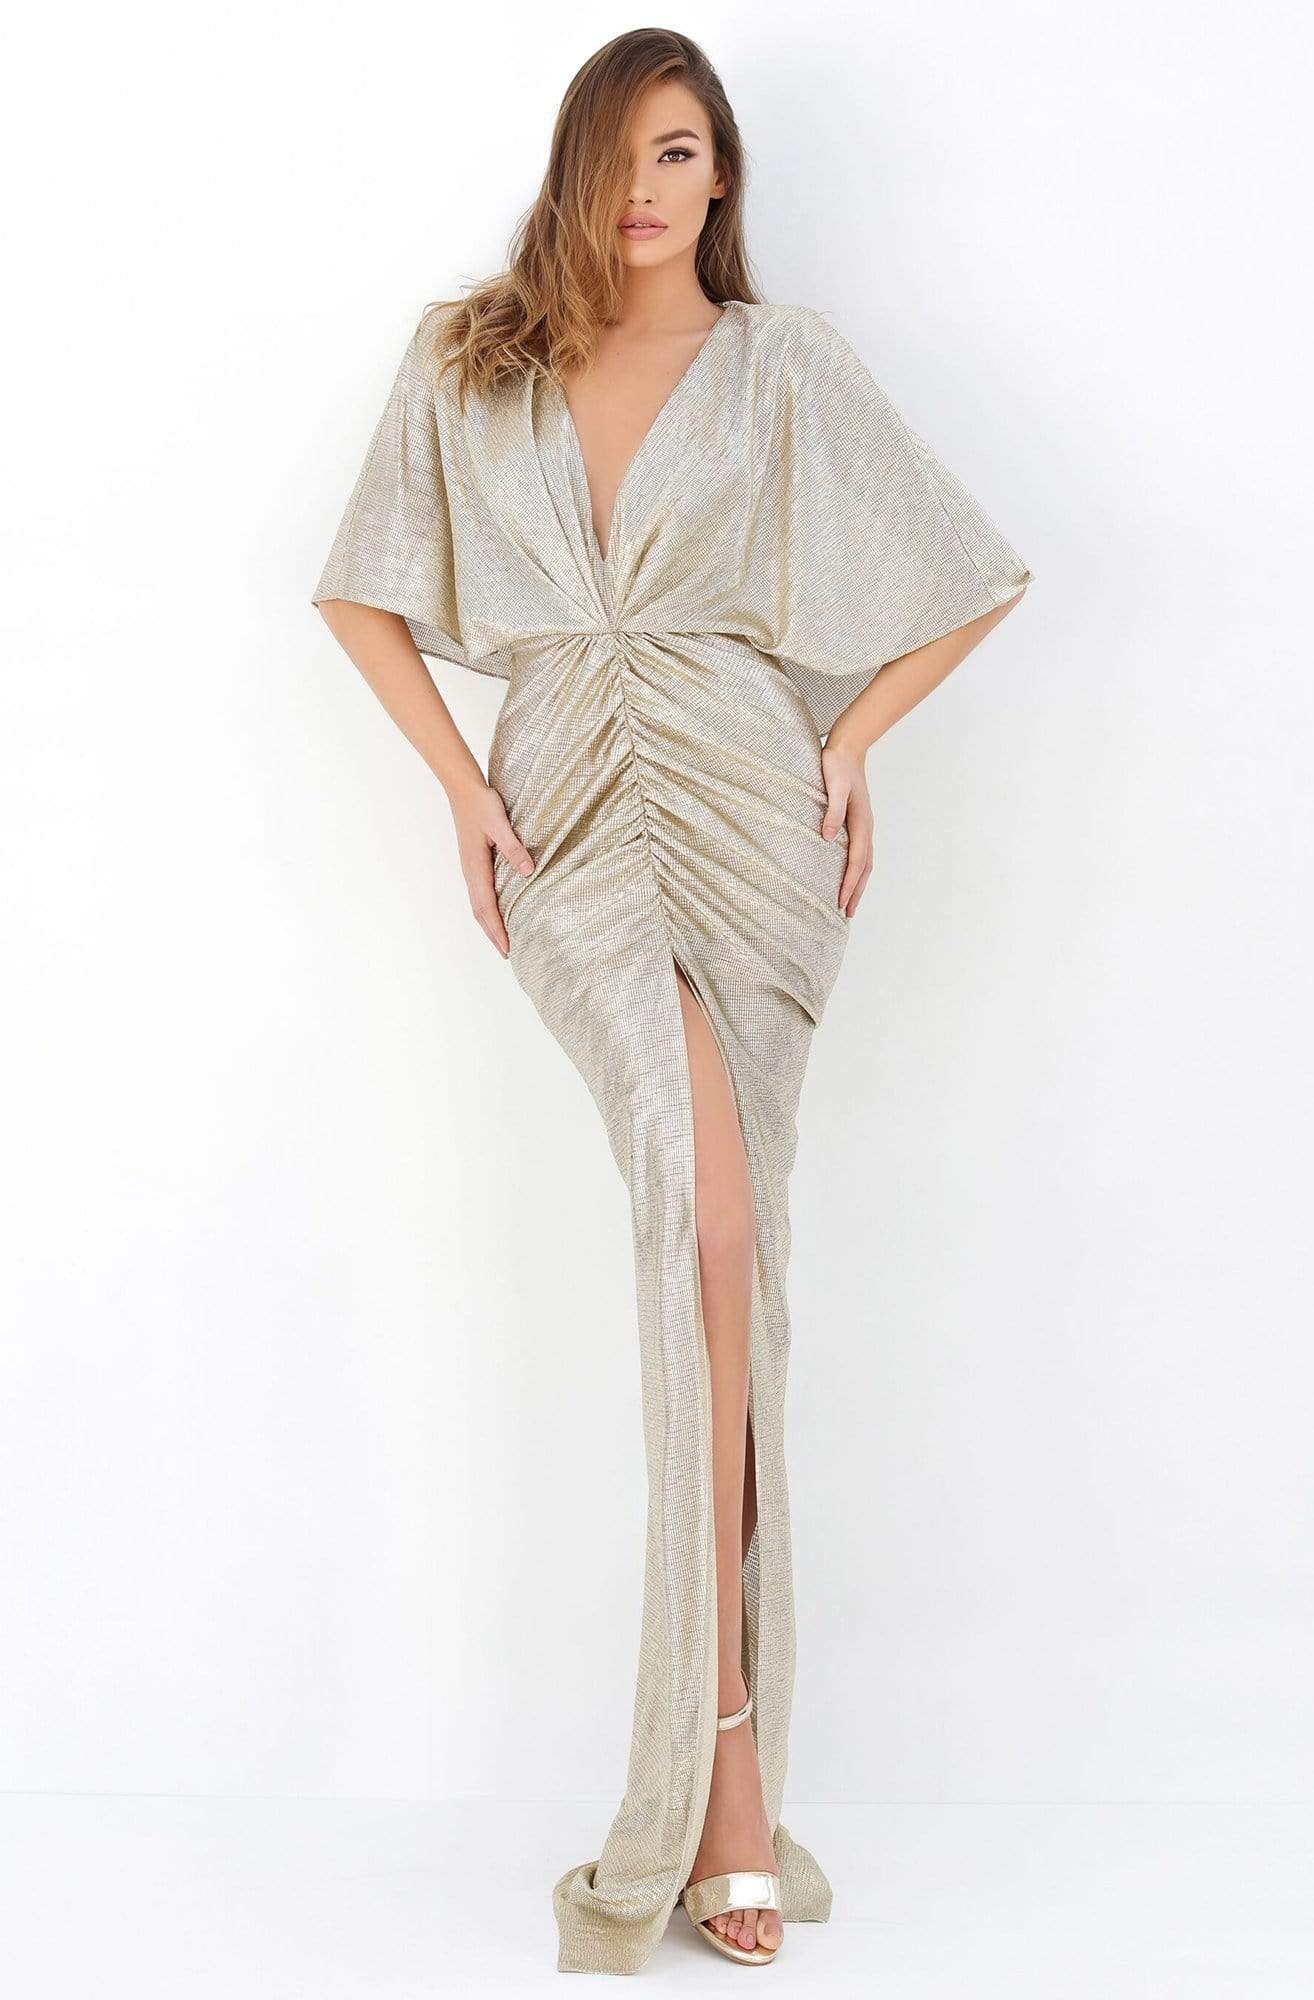 Tarik Ediz - Cape Sleeve Ruche-Ornate High Slit Gown 93807 In Gold